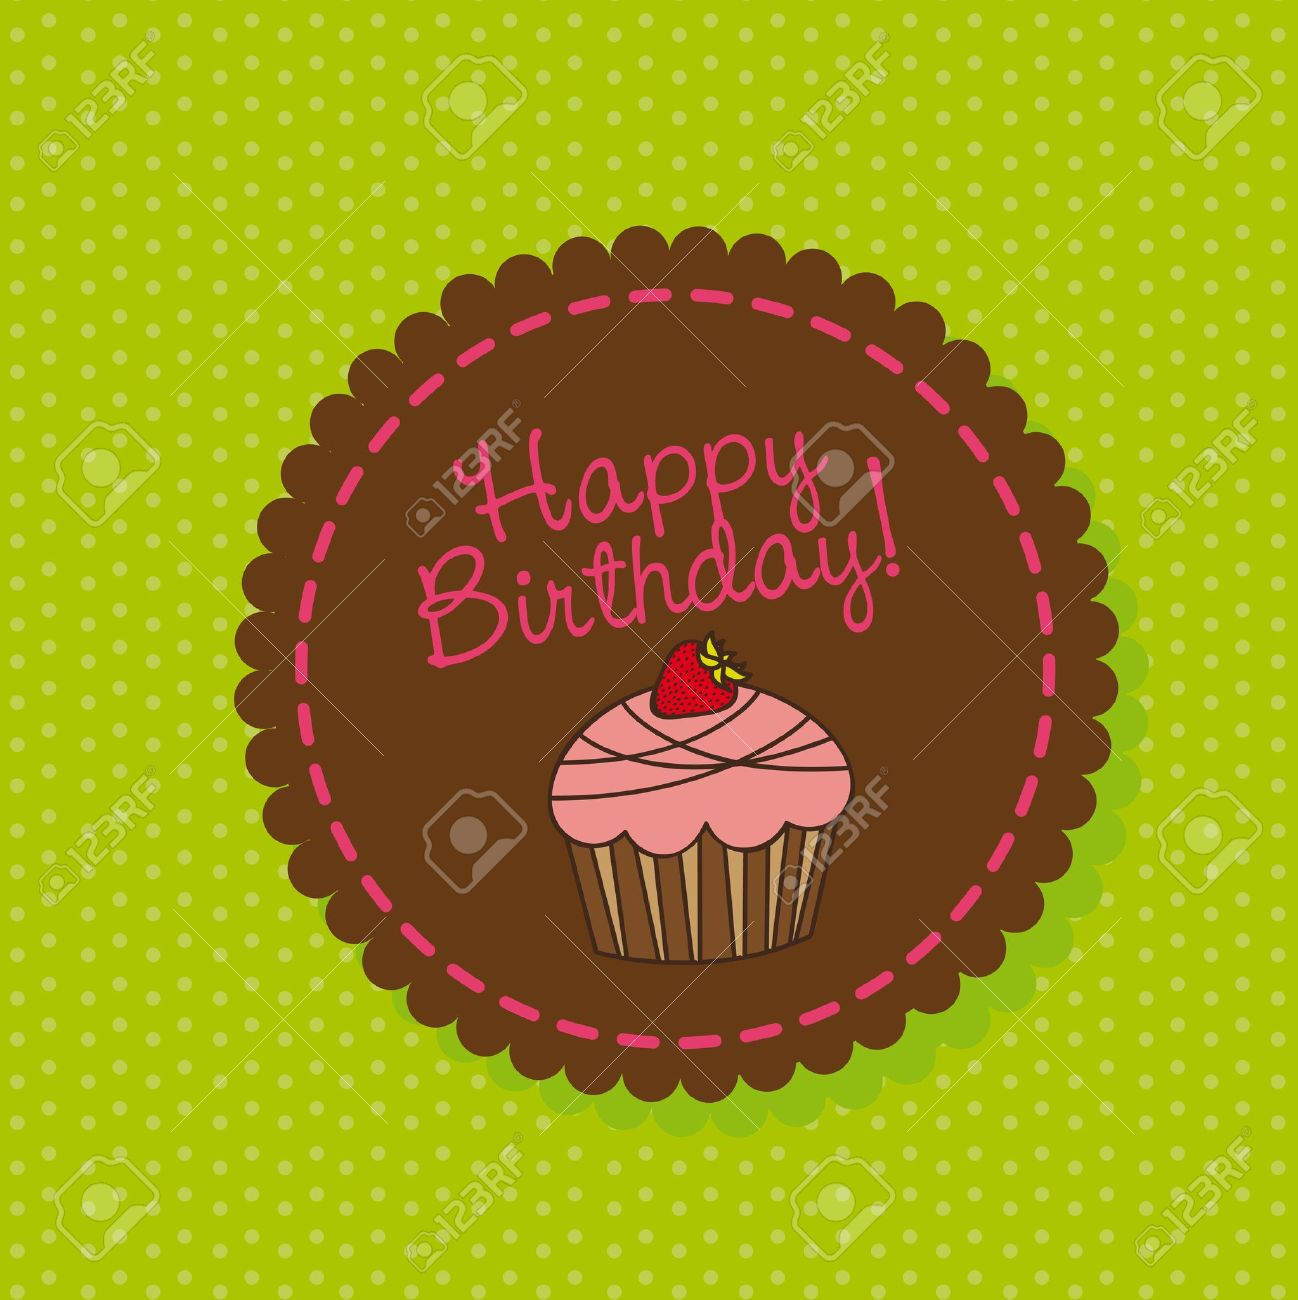 birthday cake labels ; 13032643-cute-cup-cake-over-label-happy-birthday-vector-illustration